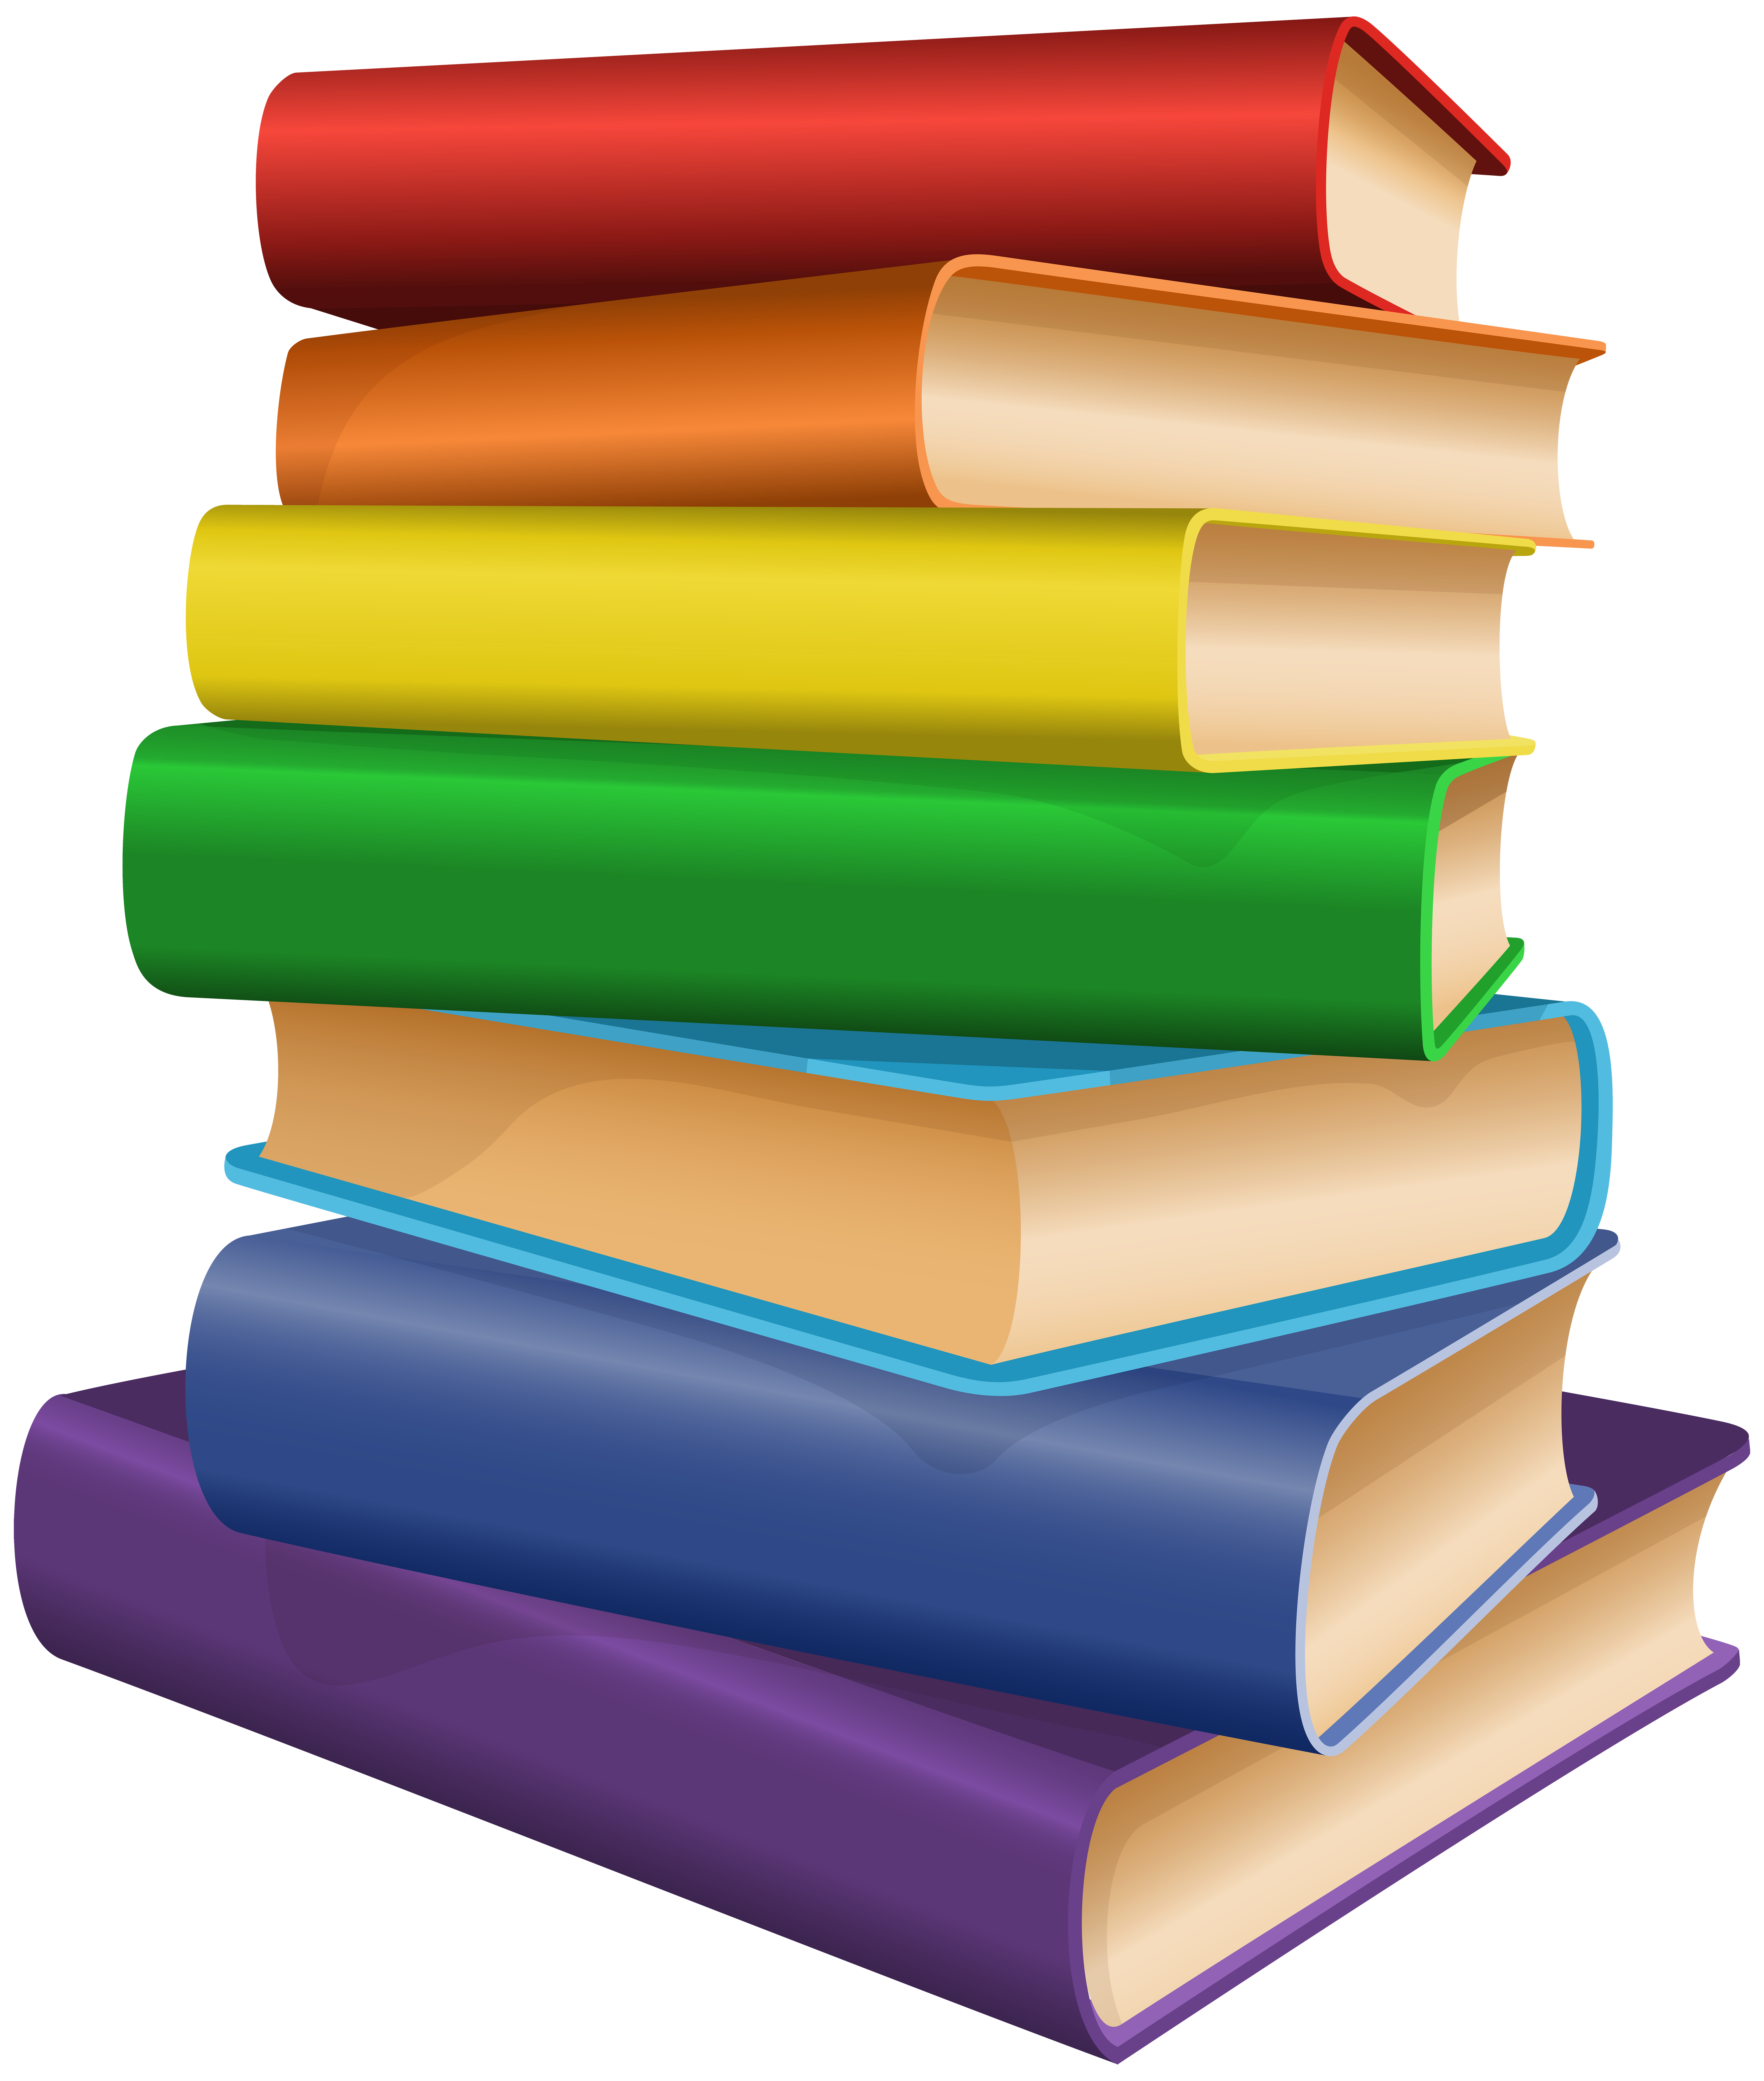 Books Clip Art PNG Image.